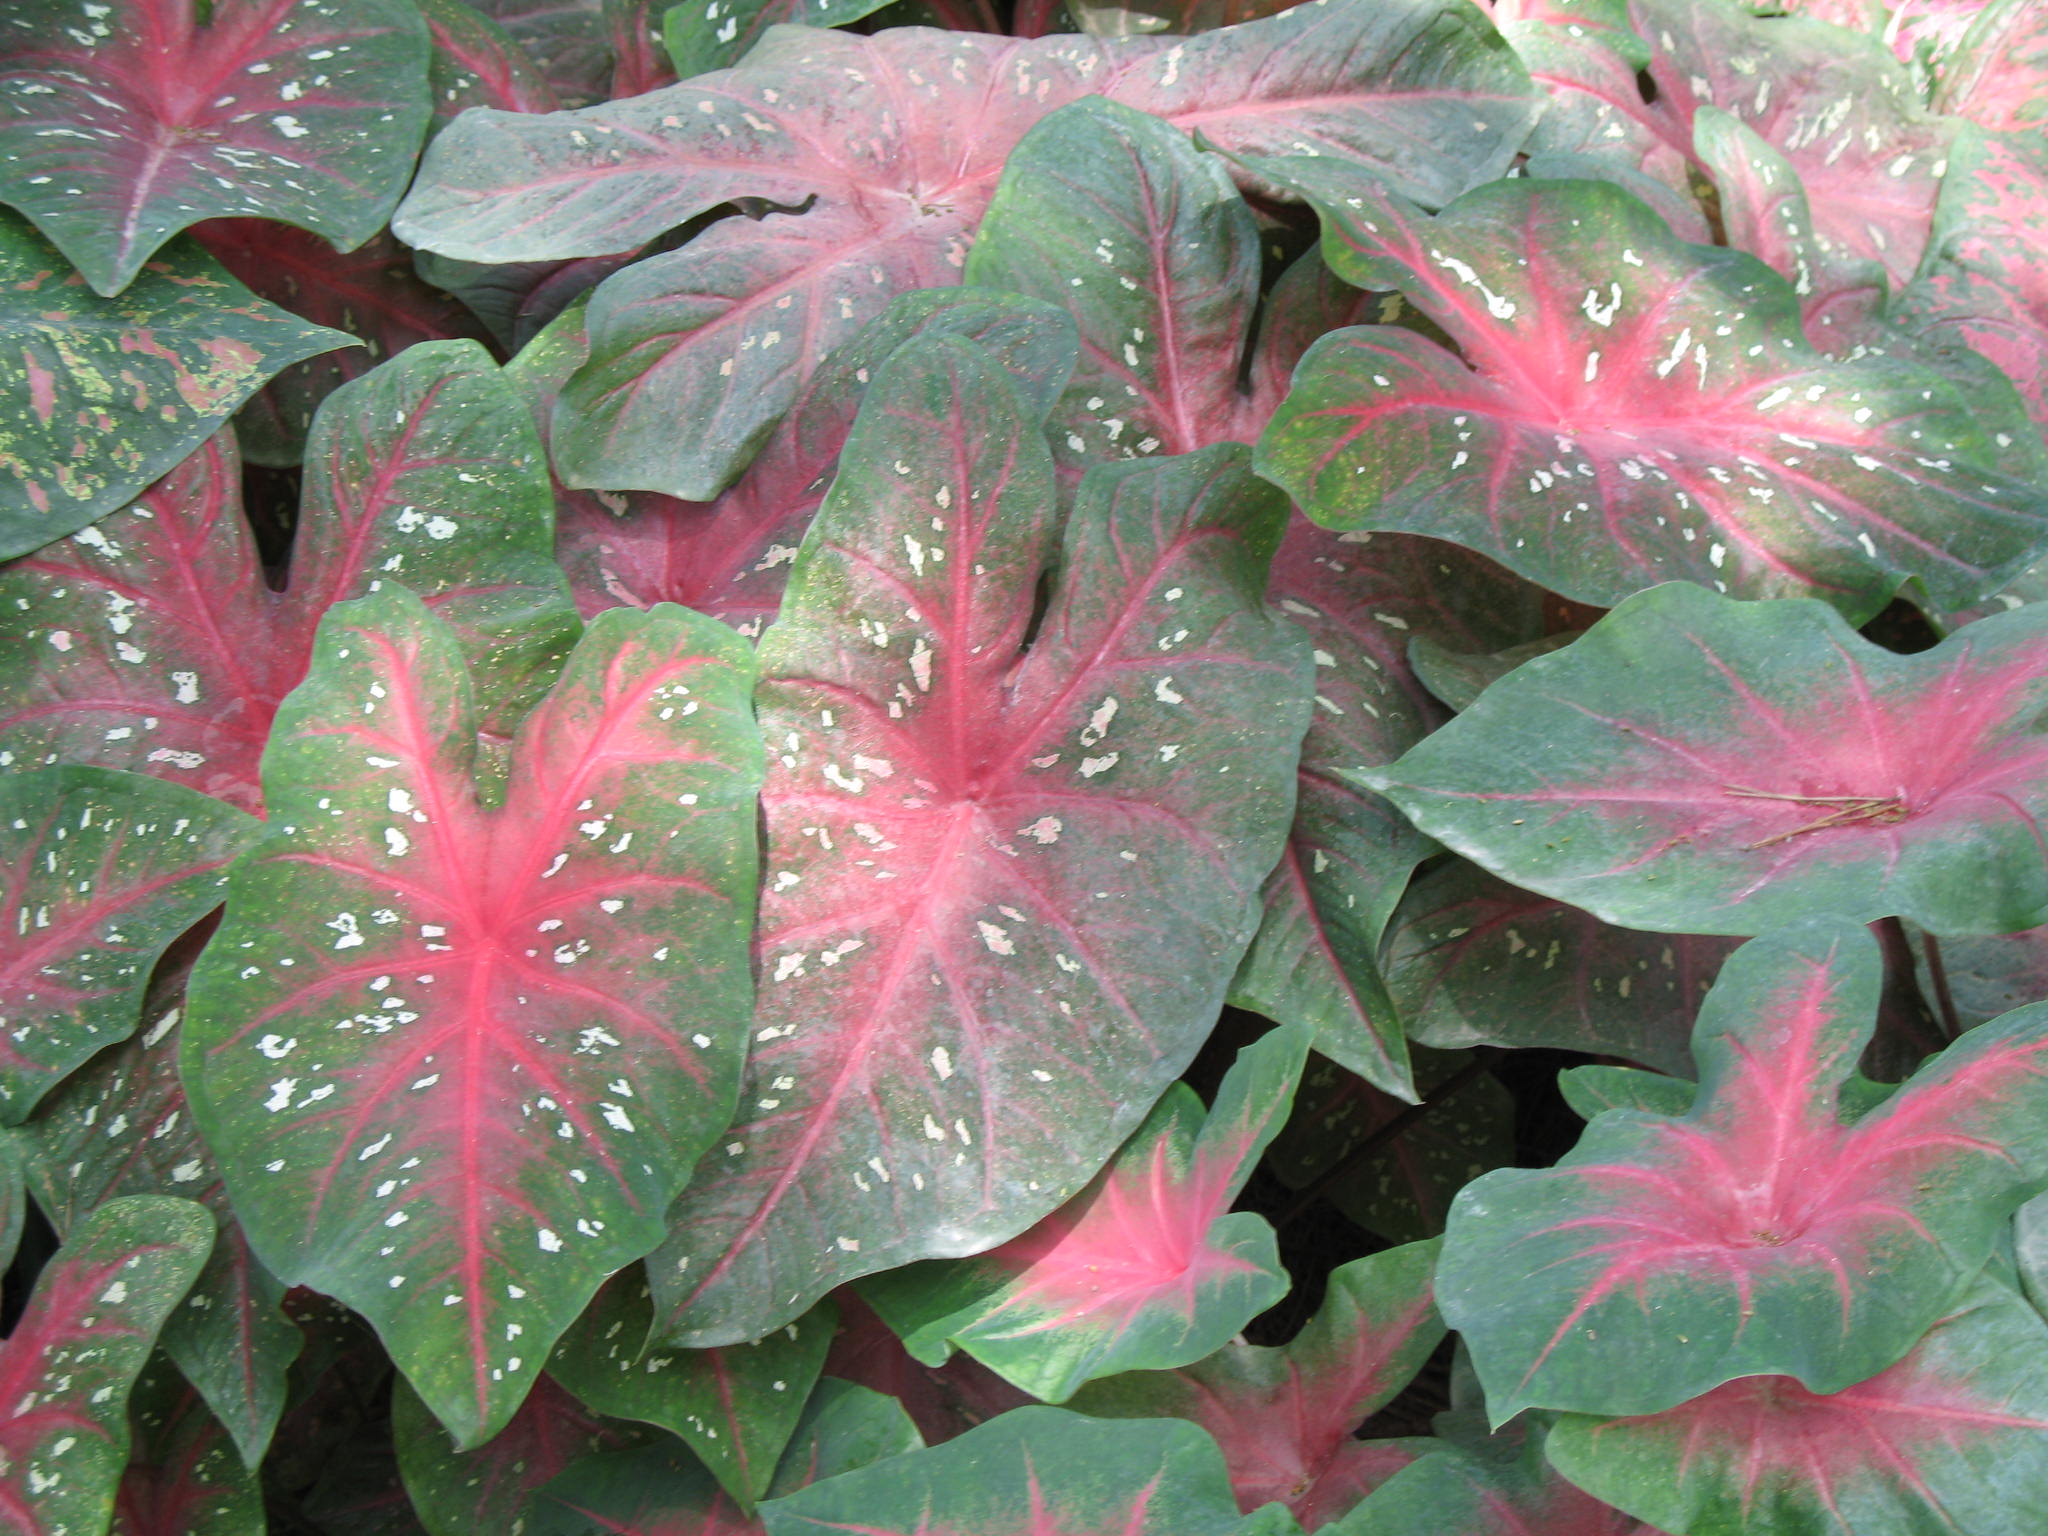 Caladium bicolor 'Red Flash'   / Caladium bicolor 'Red Flash'